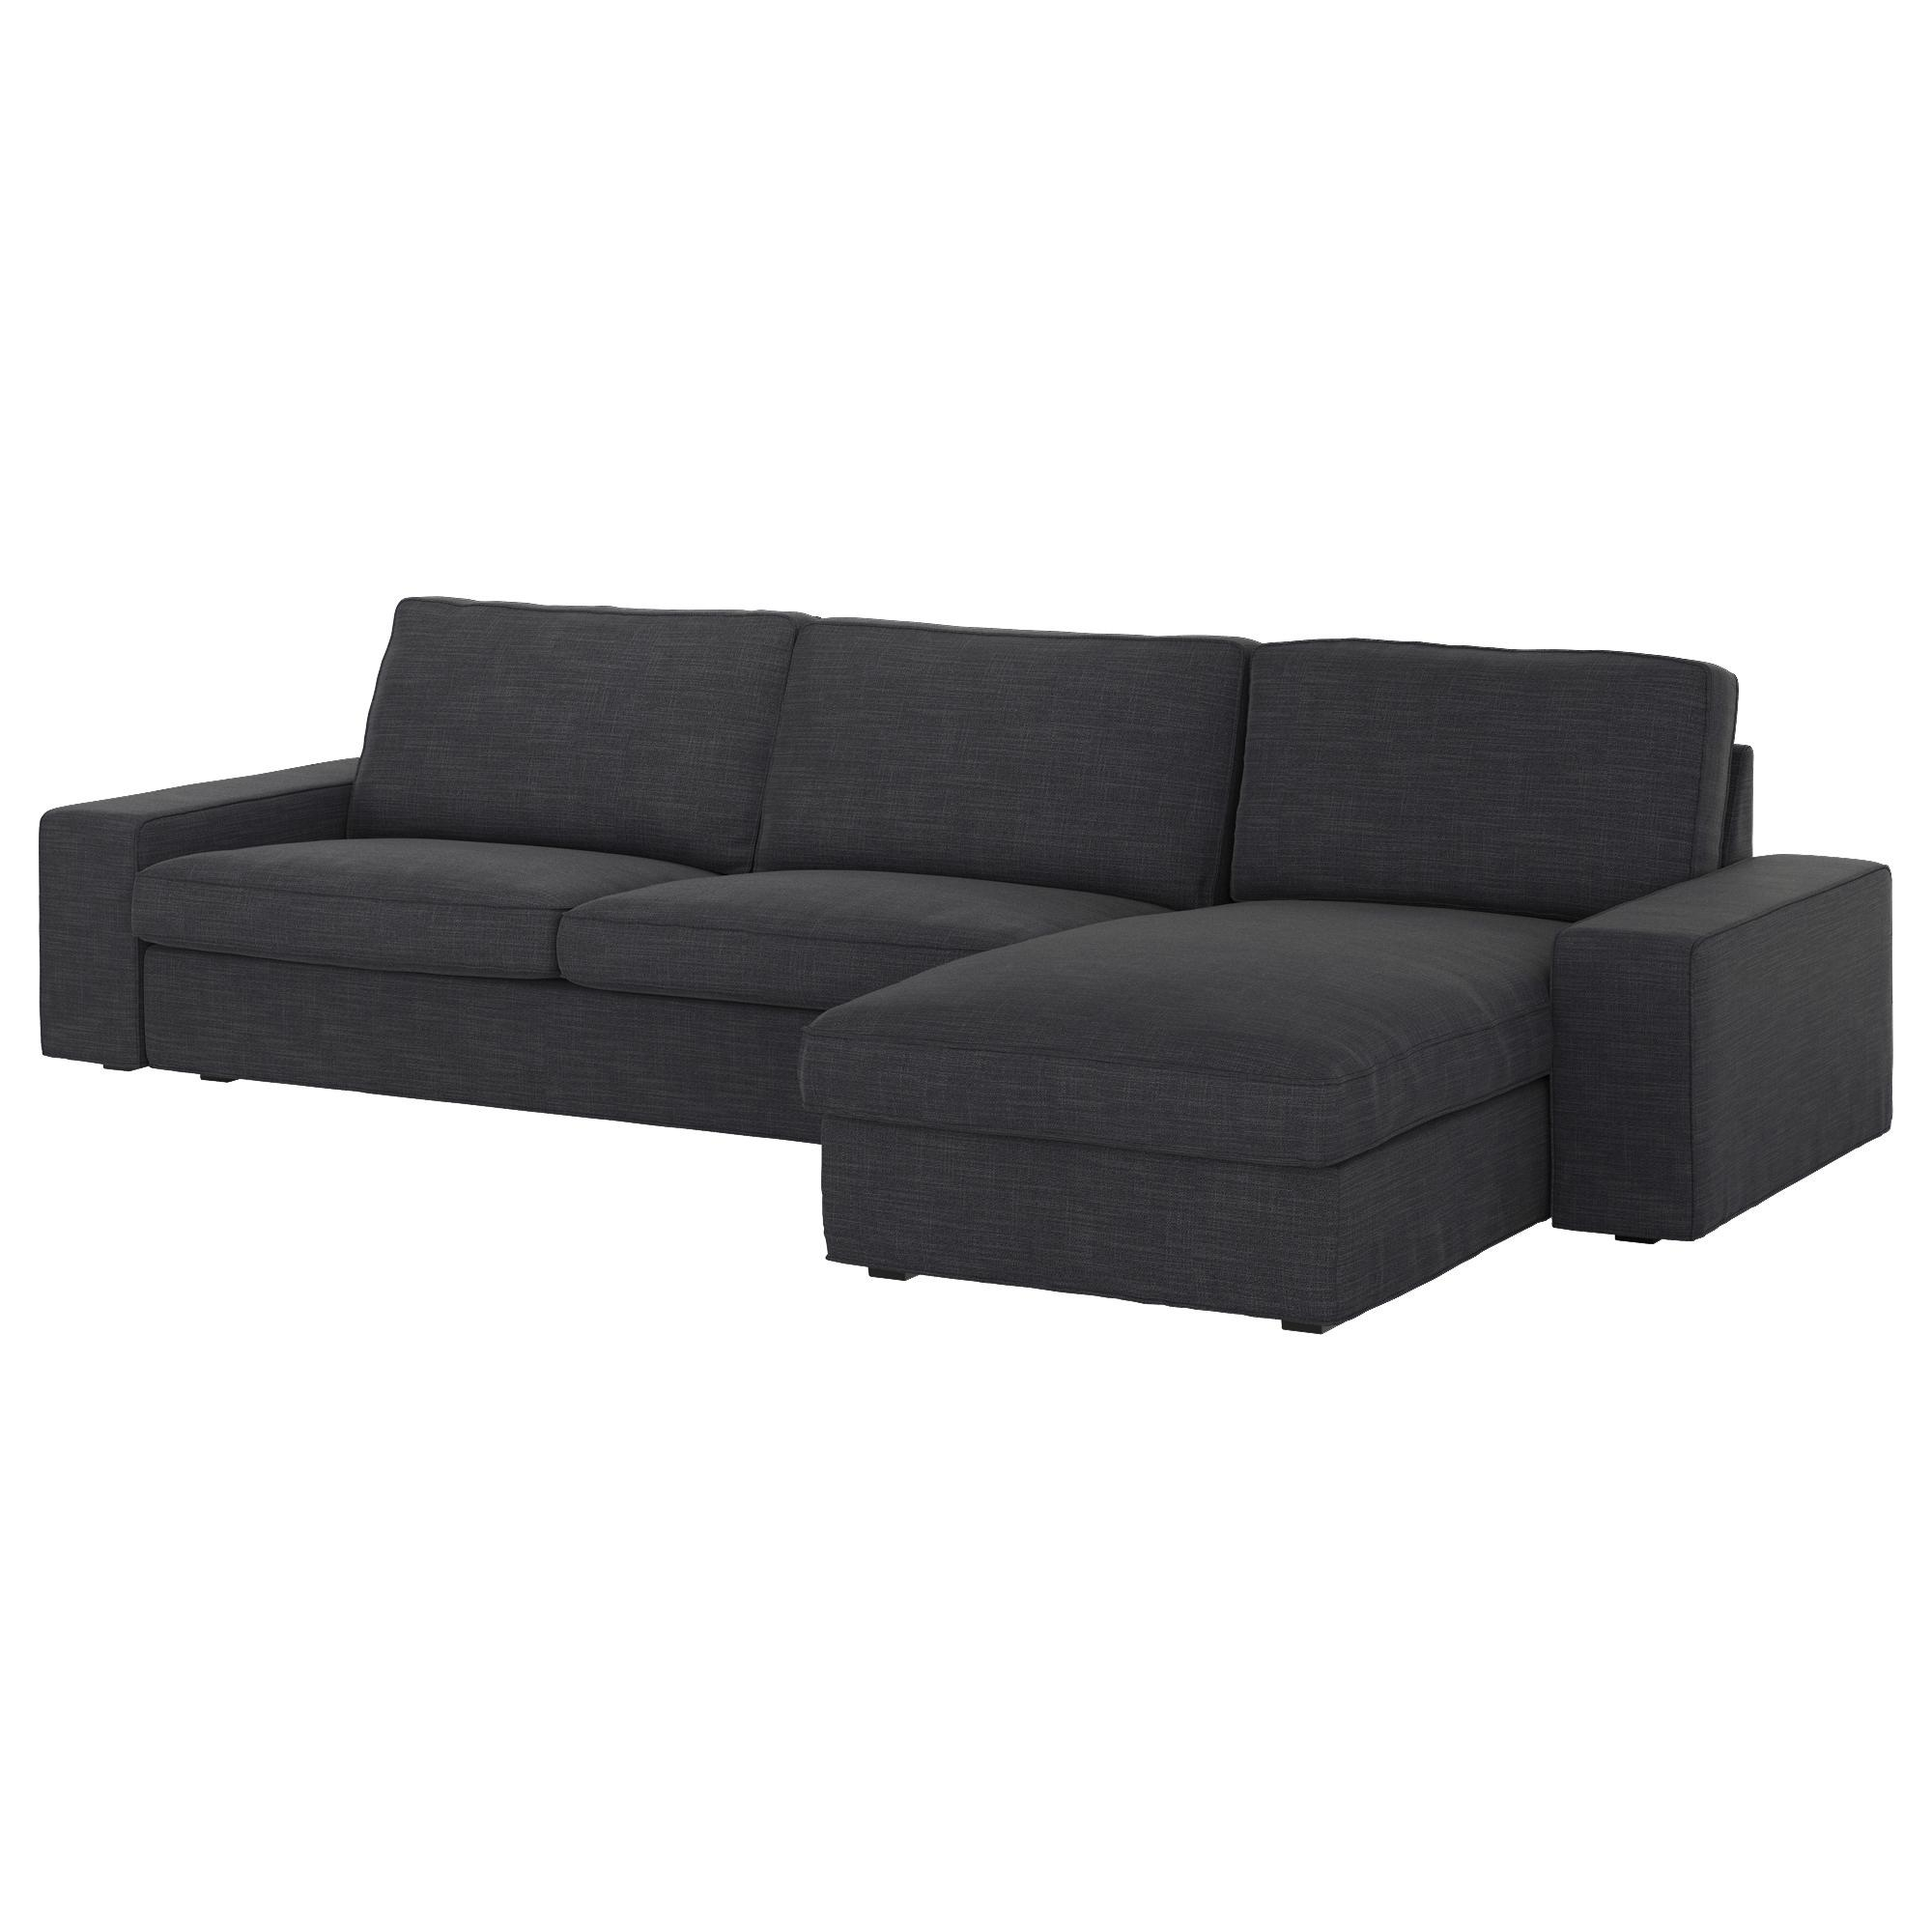 20 best collection of long sectional sofa with chaise sofa ideas. Black Bedroom Furniture Sets. Home Design Ideas